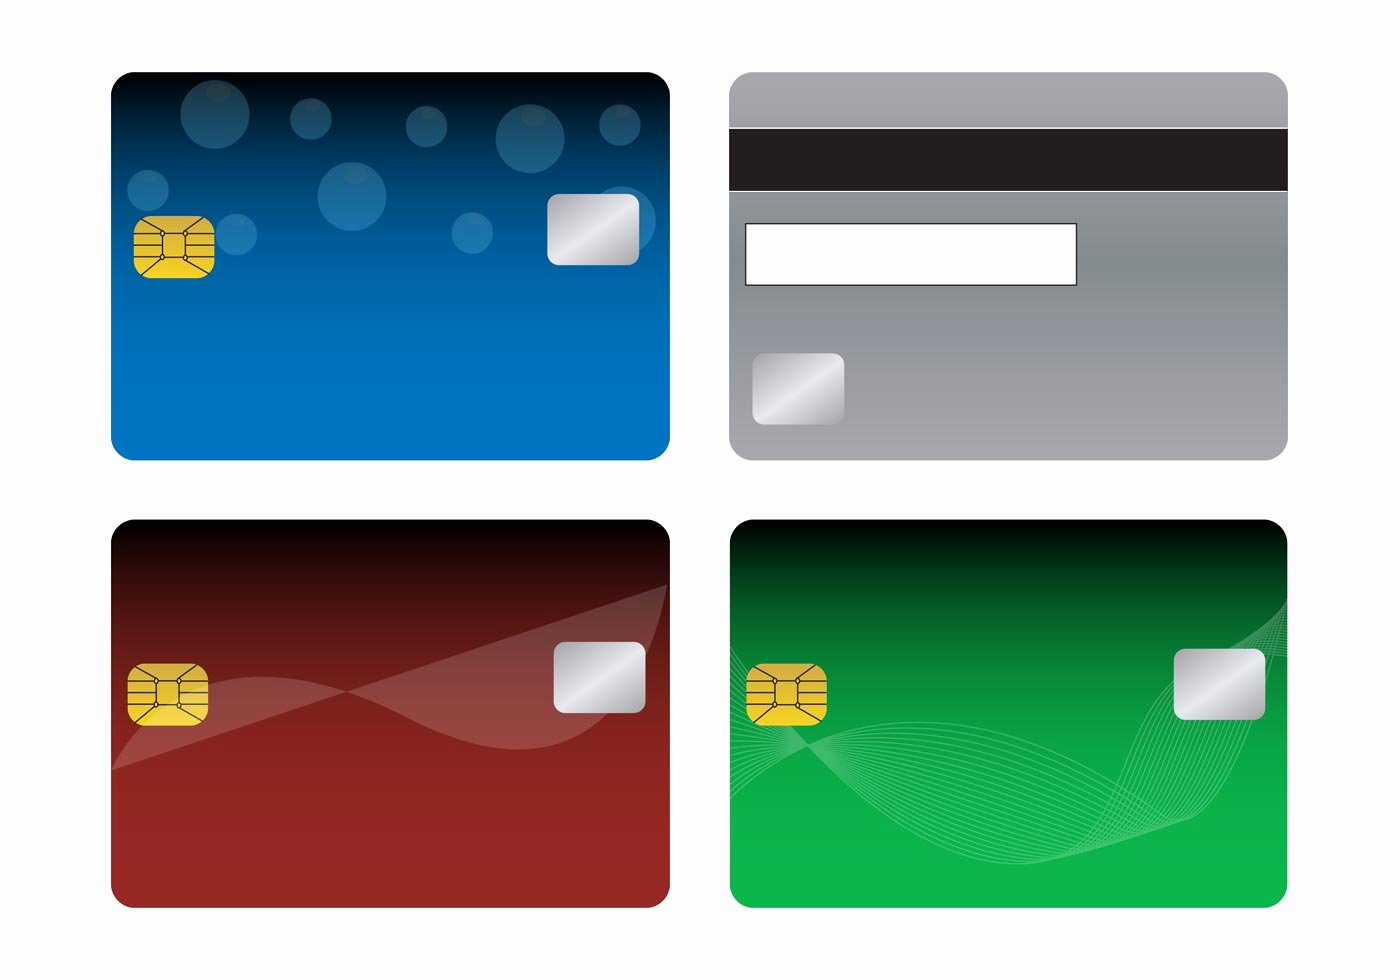 Blank Credit Card Template Elegant Bank Cards Templates Download Free Vector Art Stock